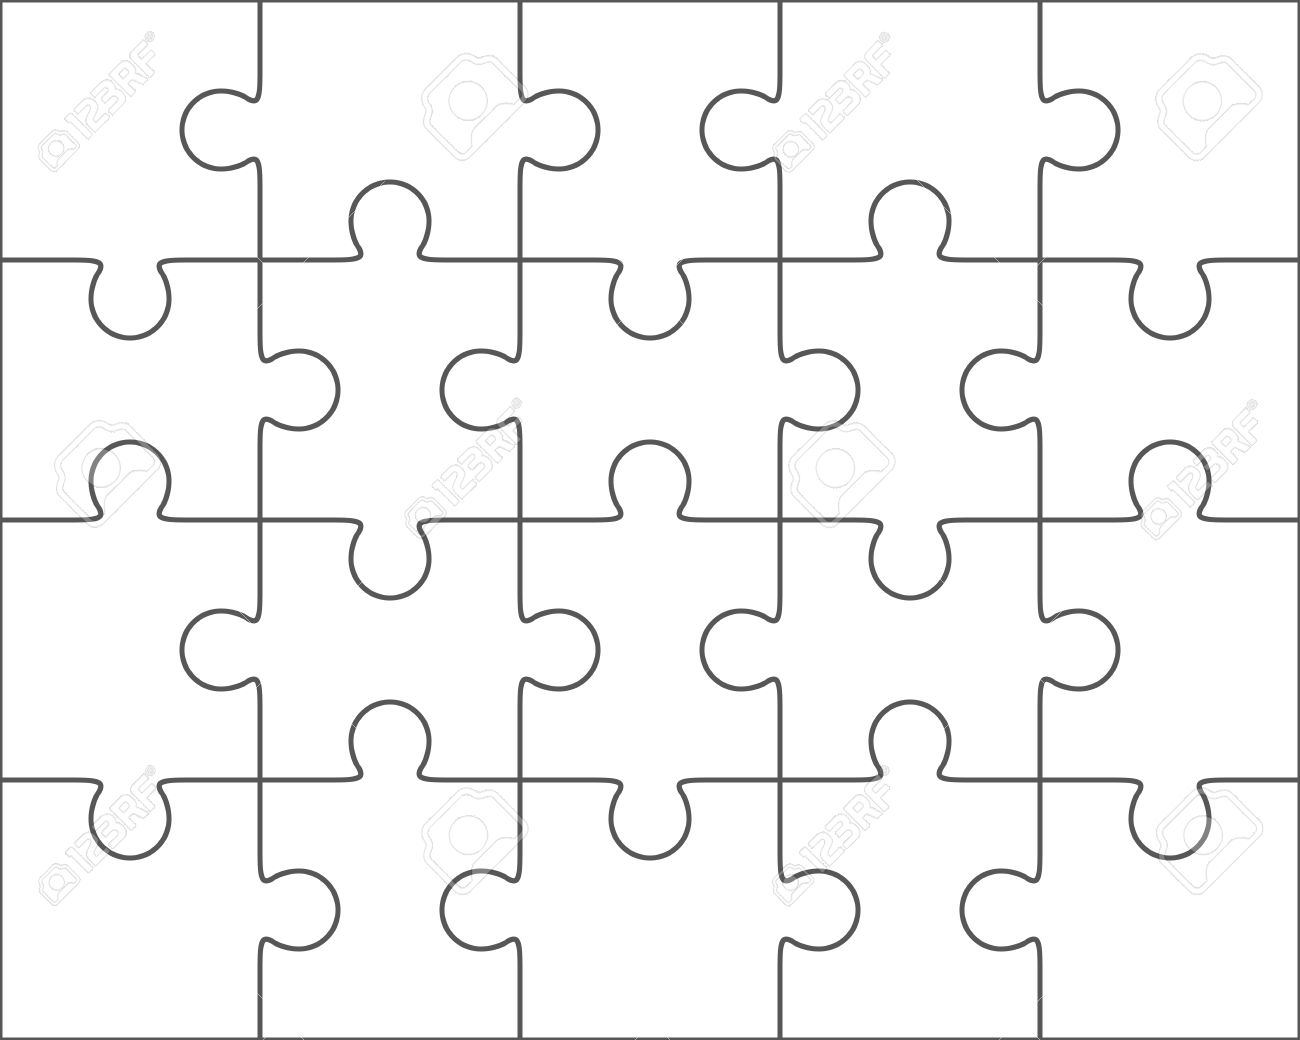 Jigsaw Puzzle Vector Blank Simple Template 4x5 Twenty Pieces Stock